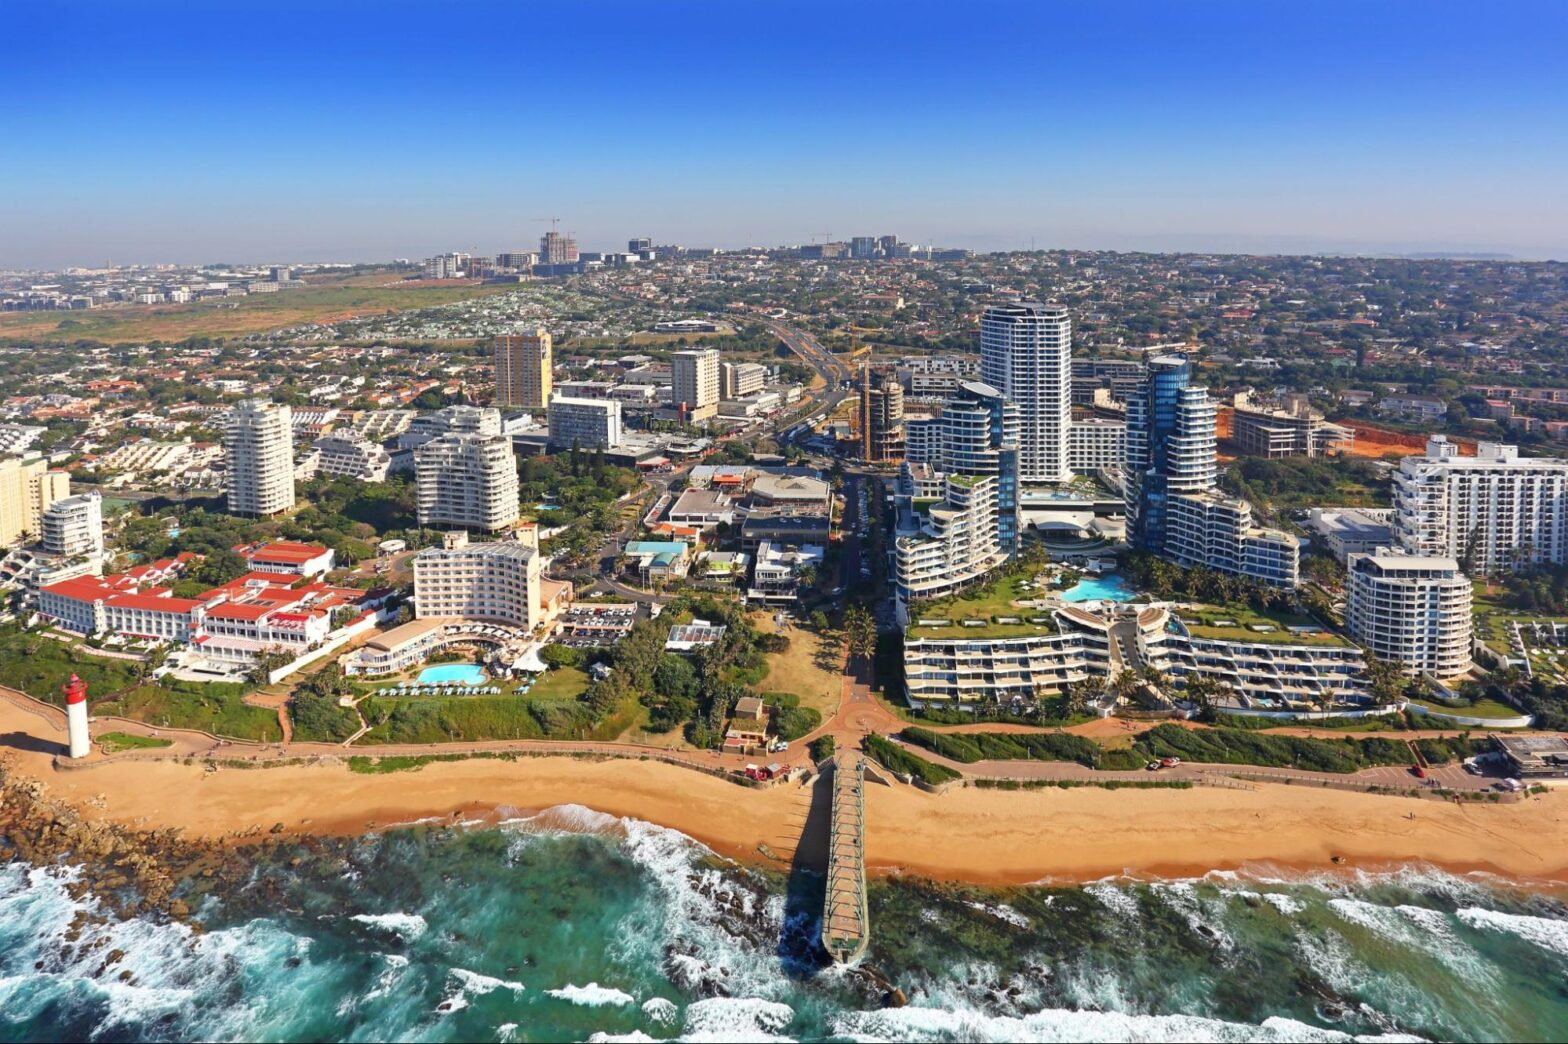 how do timeshares work: Aerial view of a city along the coast